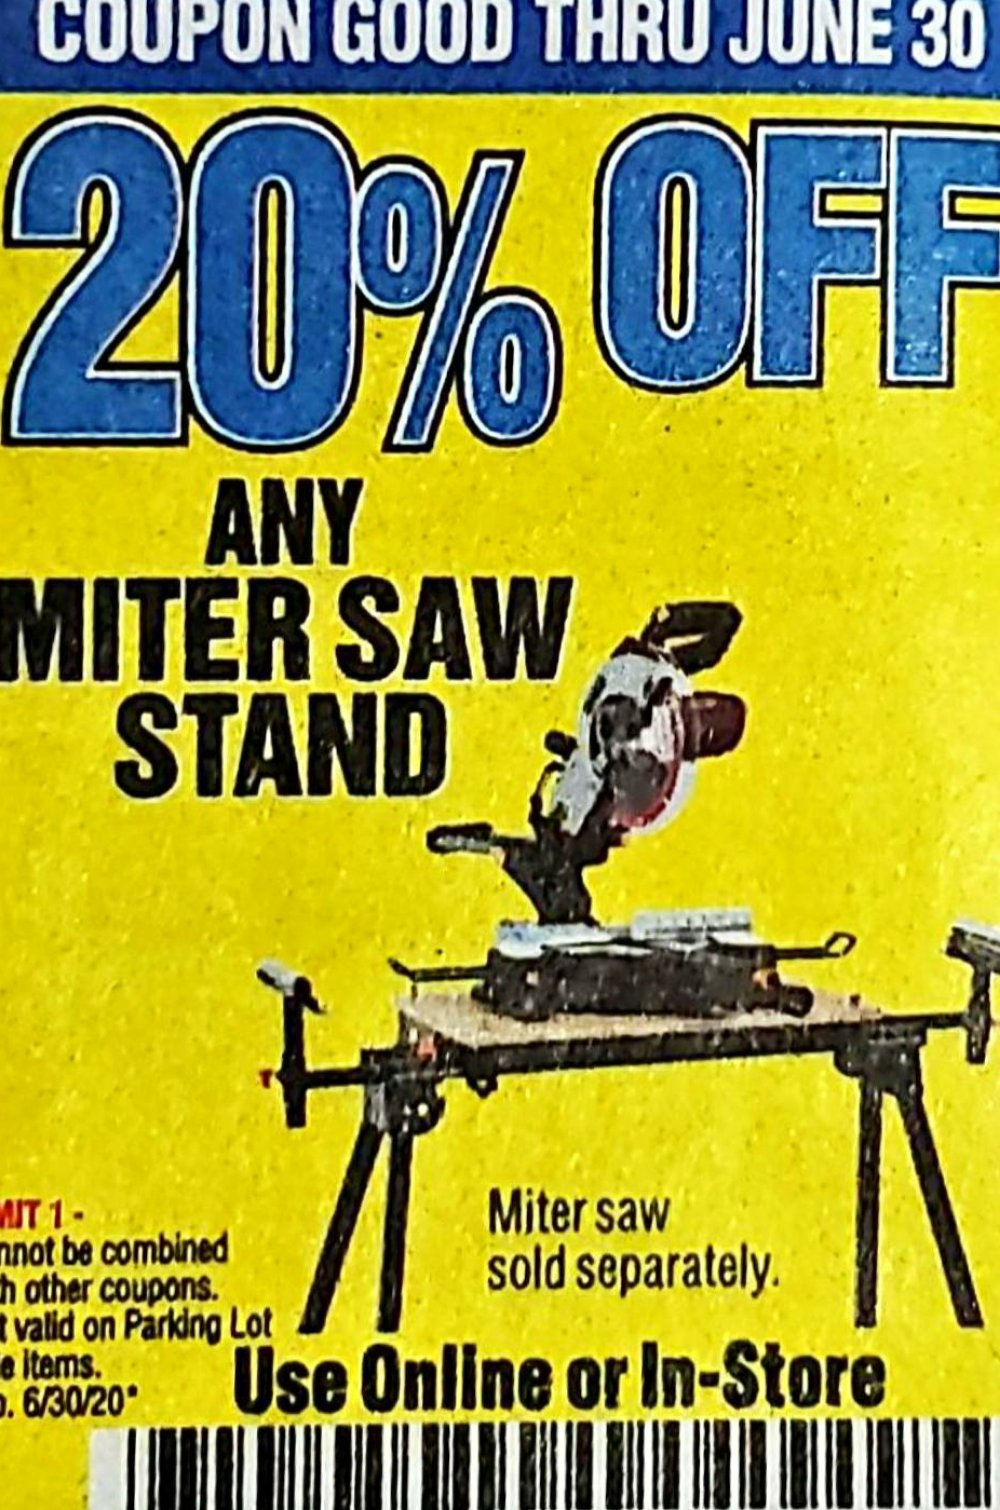 Harbor Freight Coupon, HF Coupons - 20% Any Miter Stand